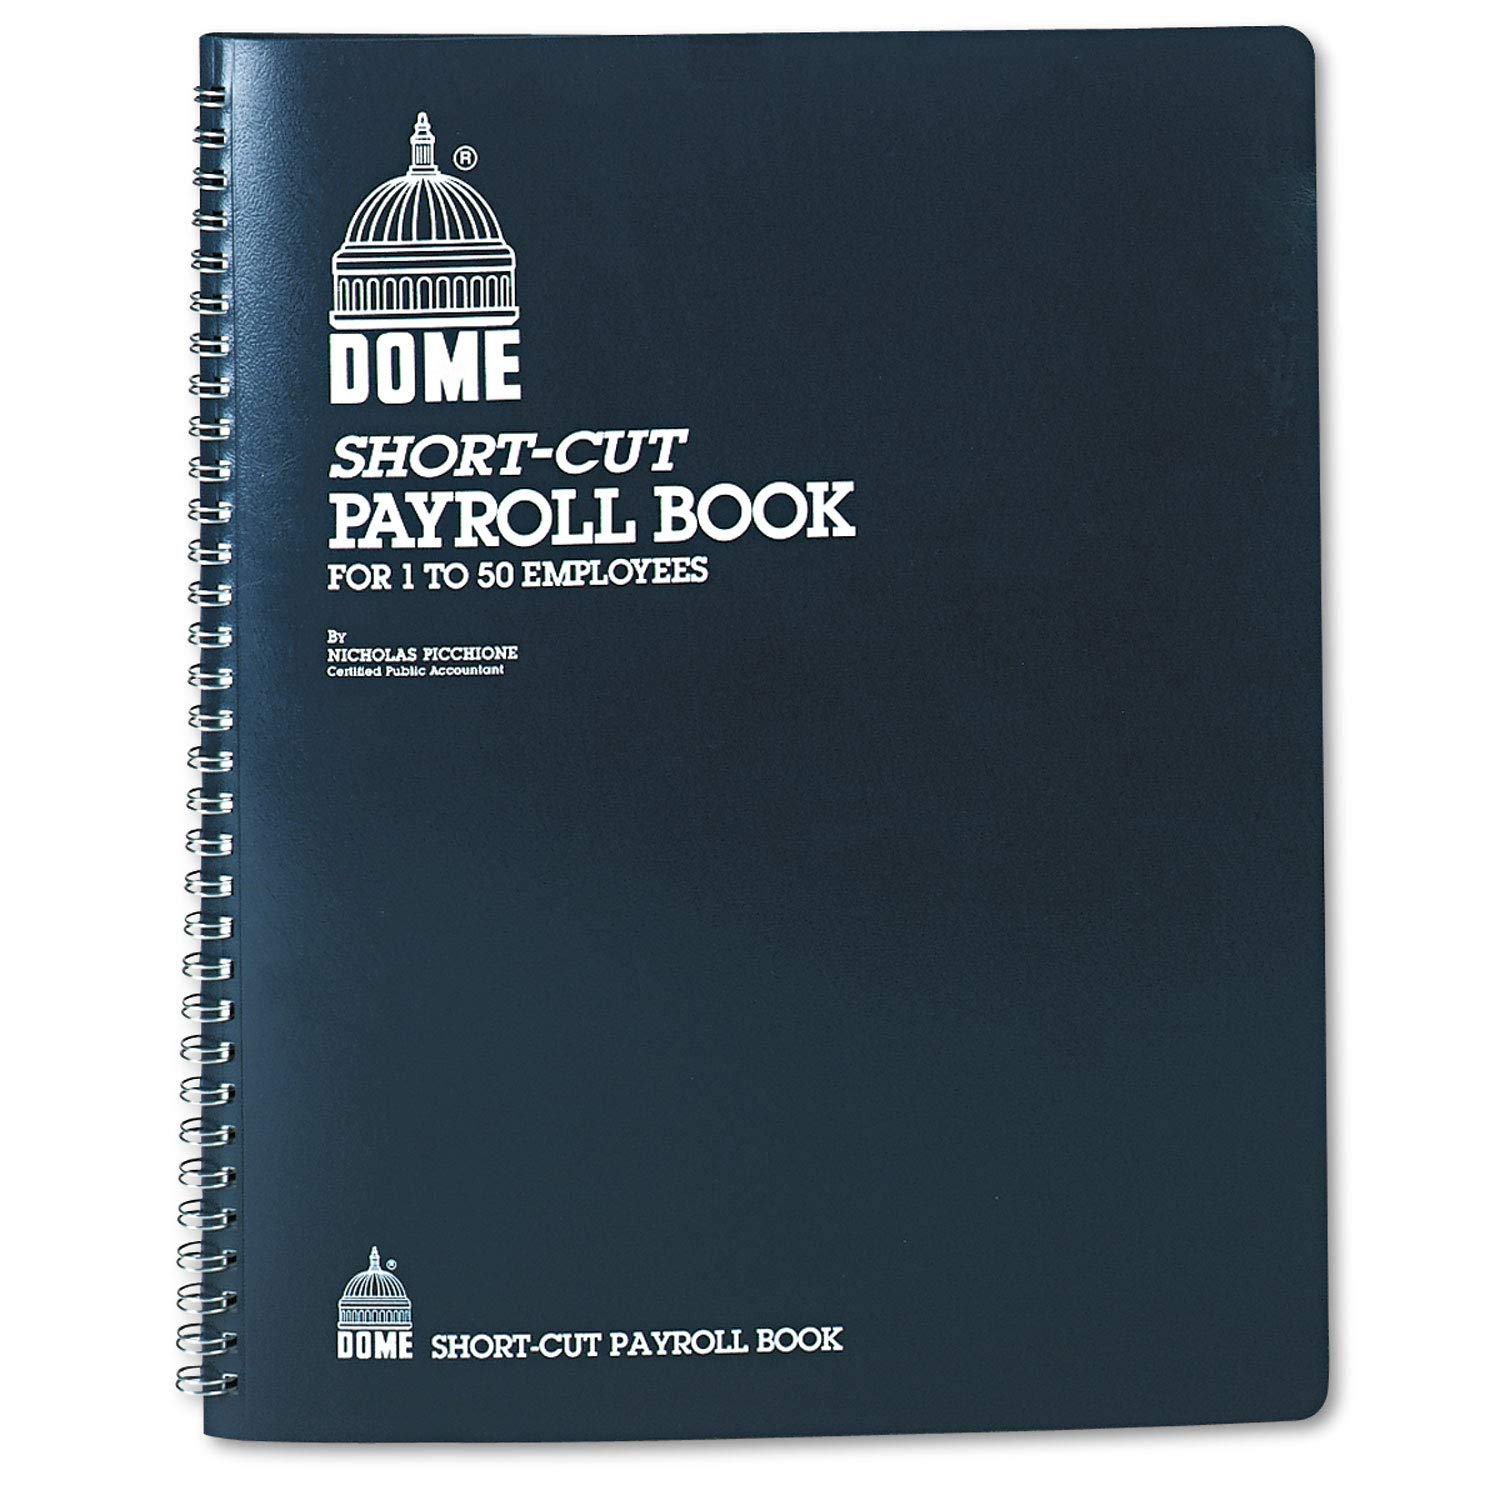 Dome Payroll Record, Single Entry System, Blue Vinyl Cover, 8 3/4 x11 1/4 Pages - 650, (Pack of 2)